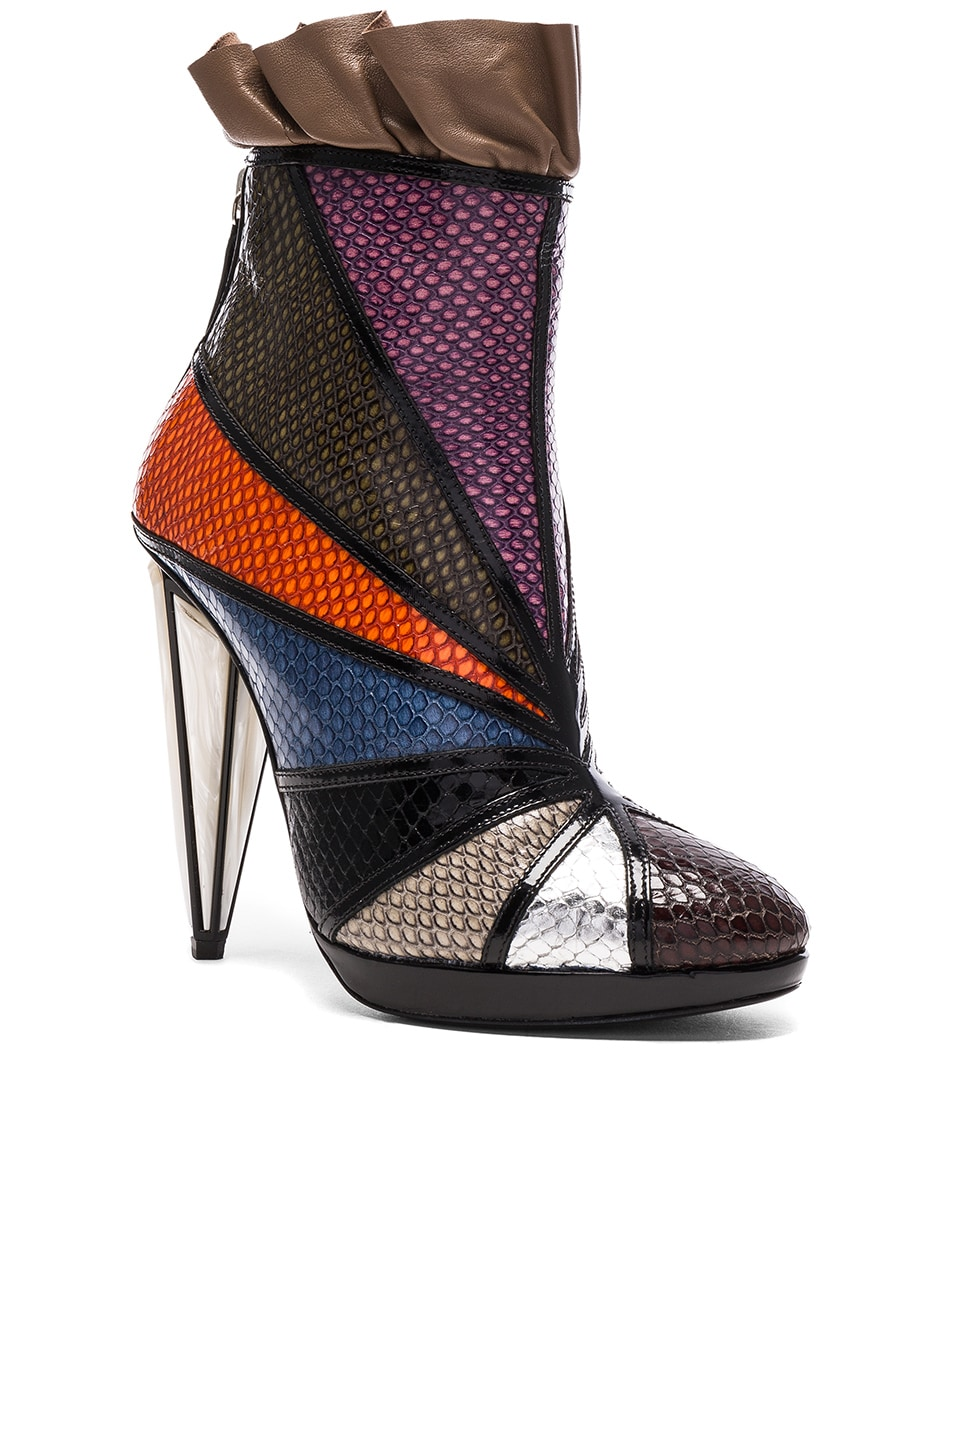 Image 2 of Rodarte Embossed Metallic Leather Ankle Booties in Multi